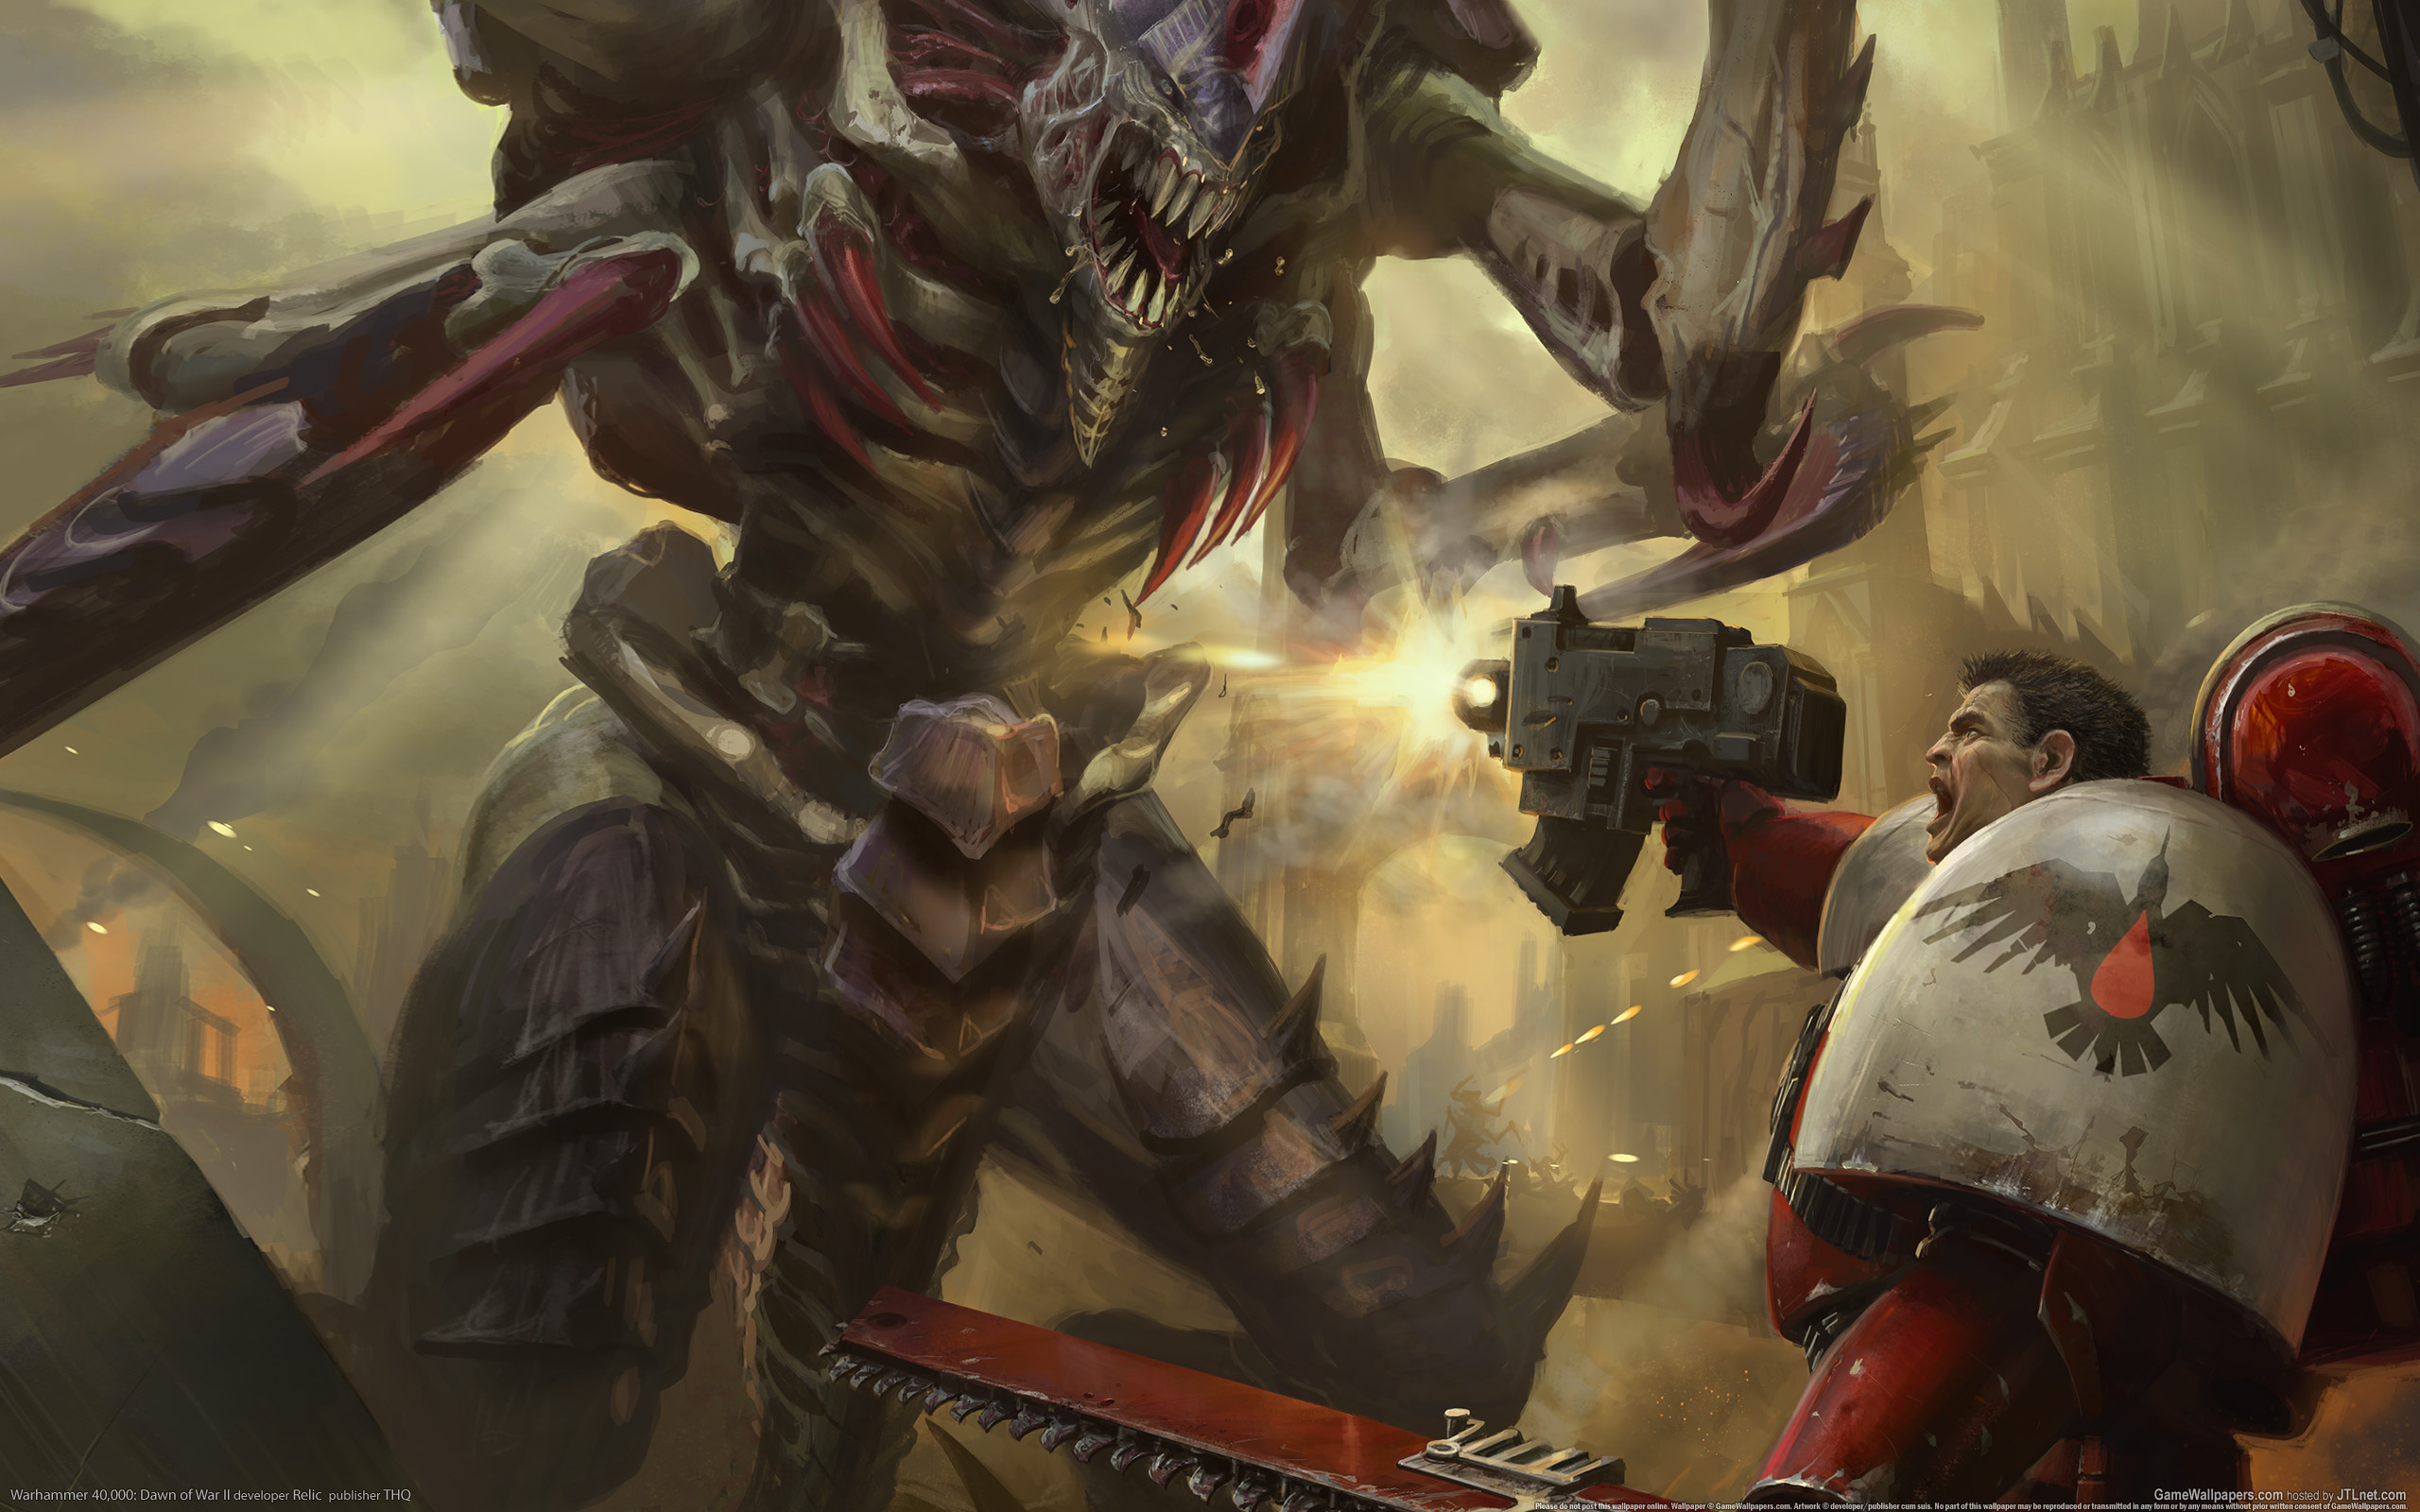 Warhammer 40k Tyranid Wallpaper - WallpaperSafari